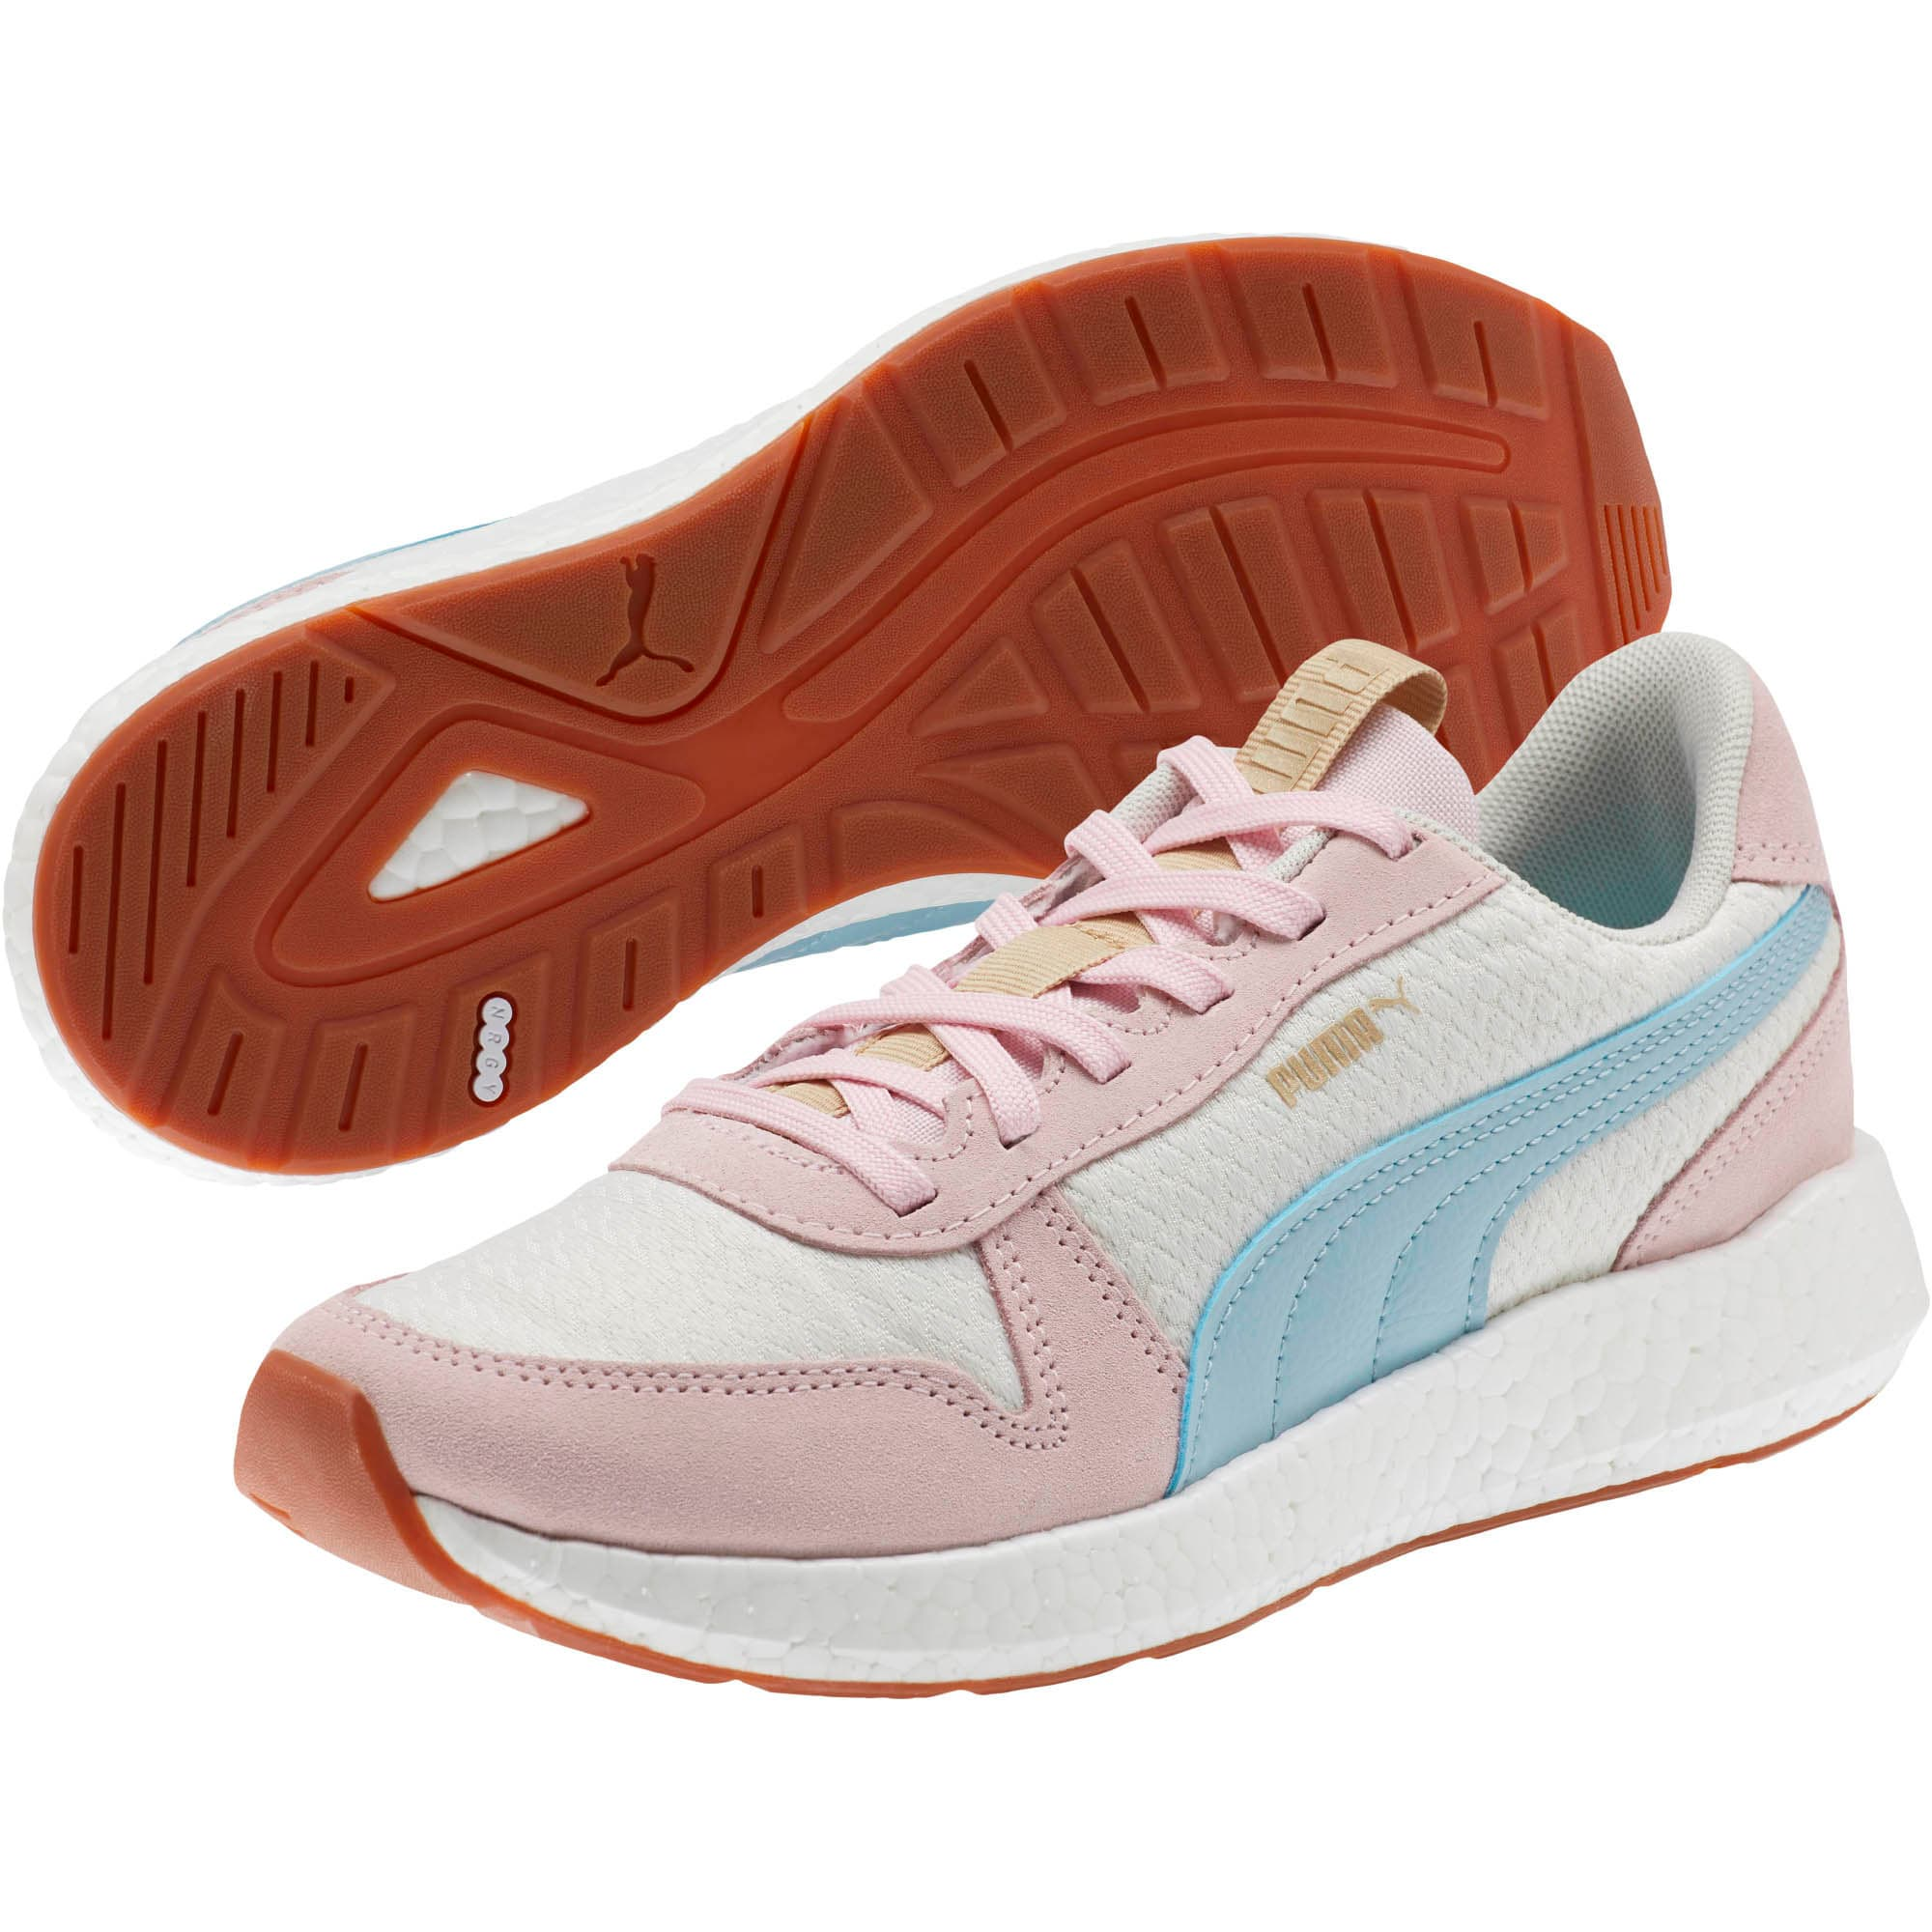 Thumbnail 2 of NRGY Neko Retro Sweet Women's Street Running Shoes, Whisper White-Pink-Sky, medium